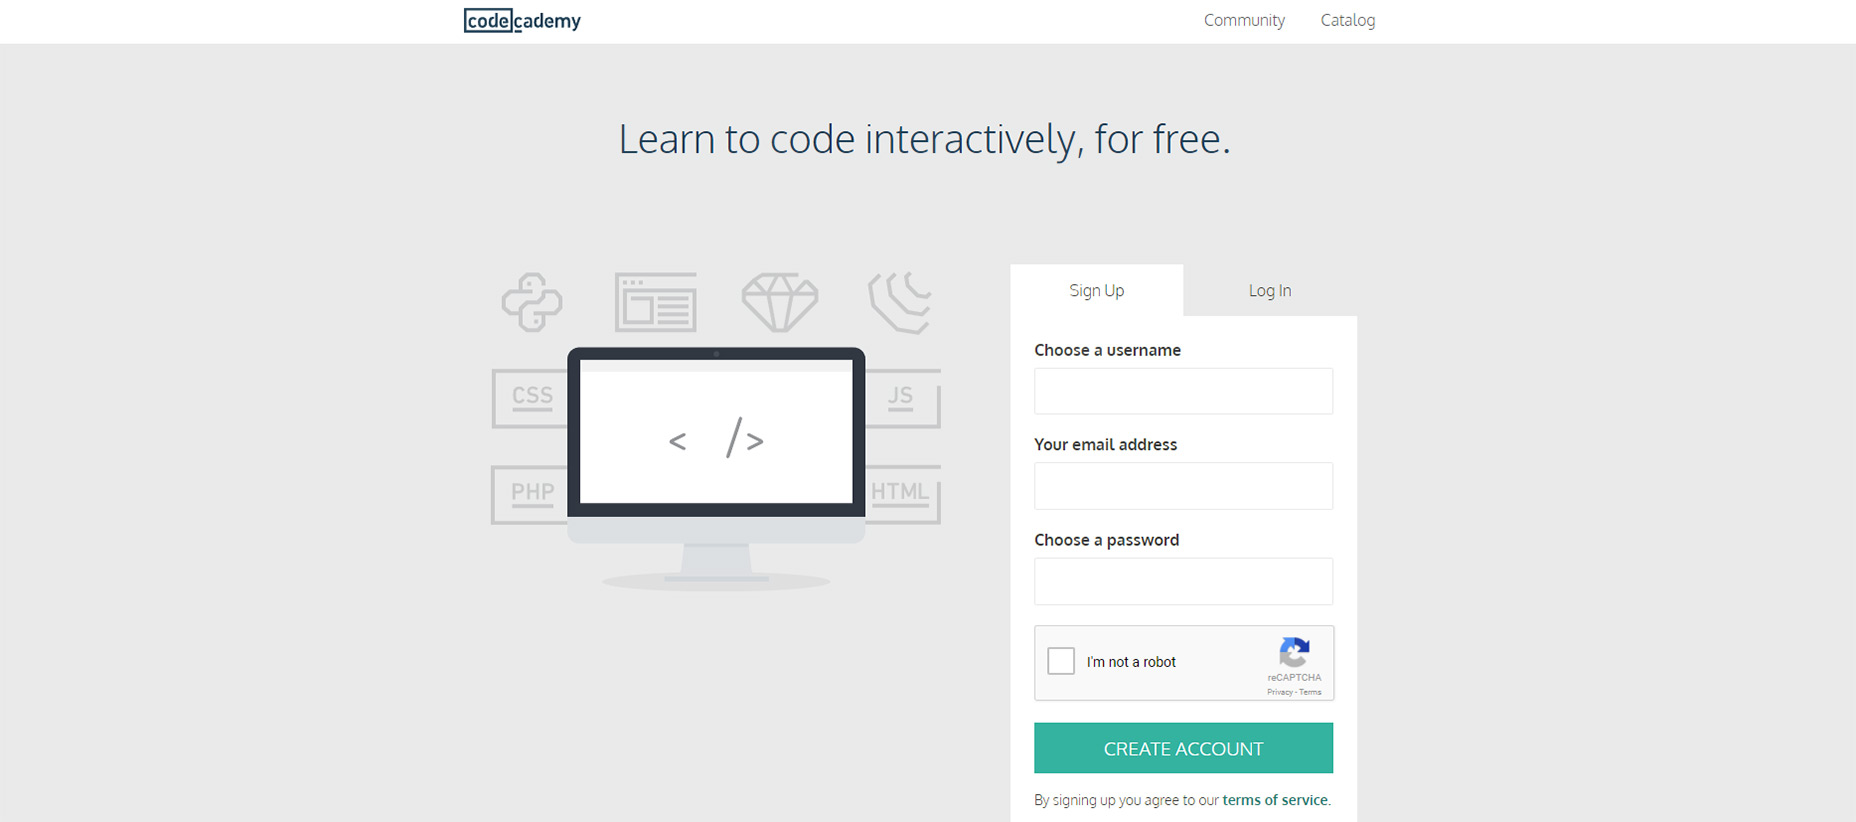 02-codecademy-homepage